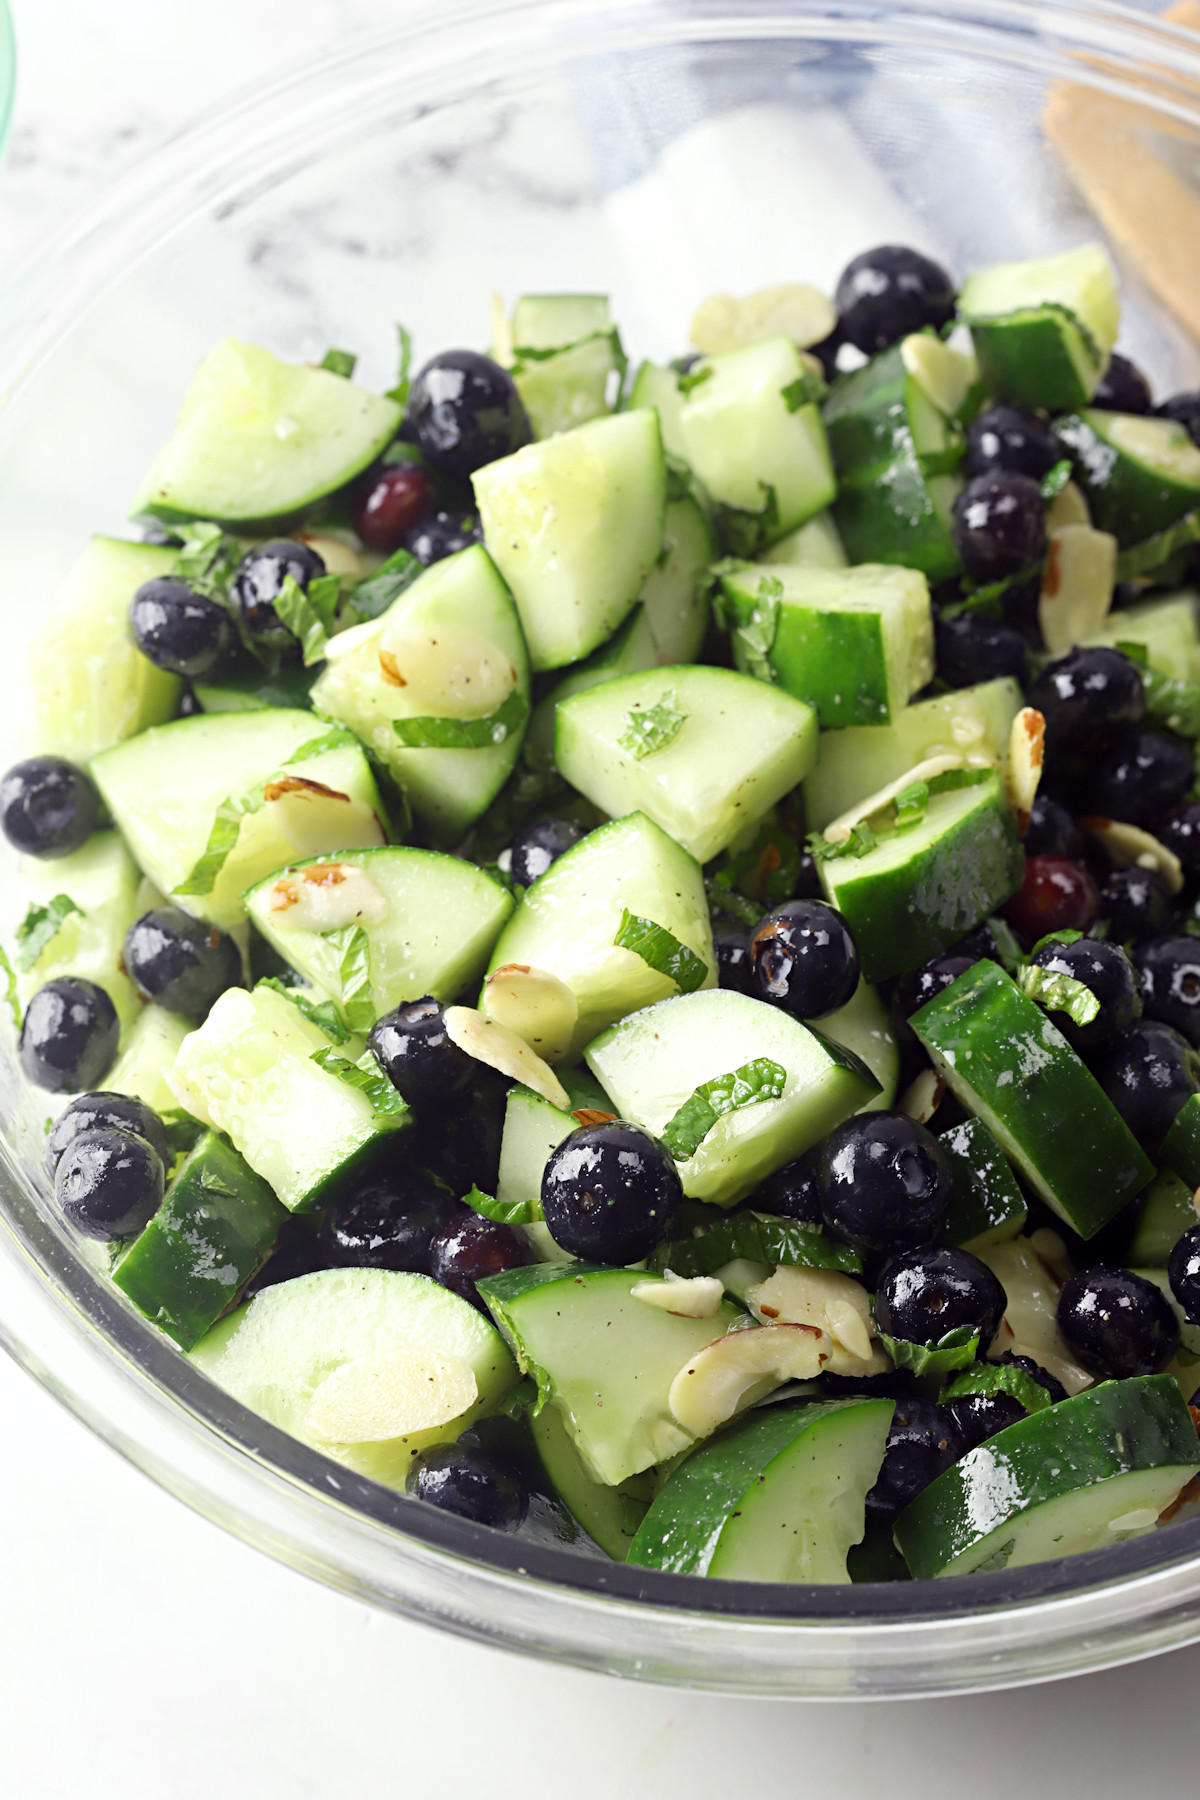 Glass bowl filled with cucumbers slices and blueberries.